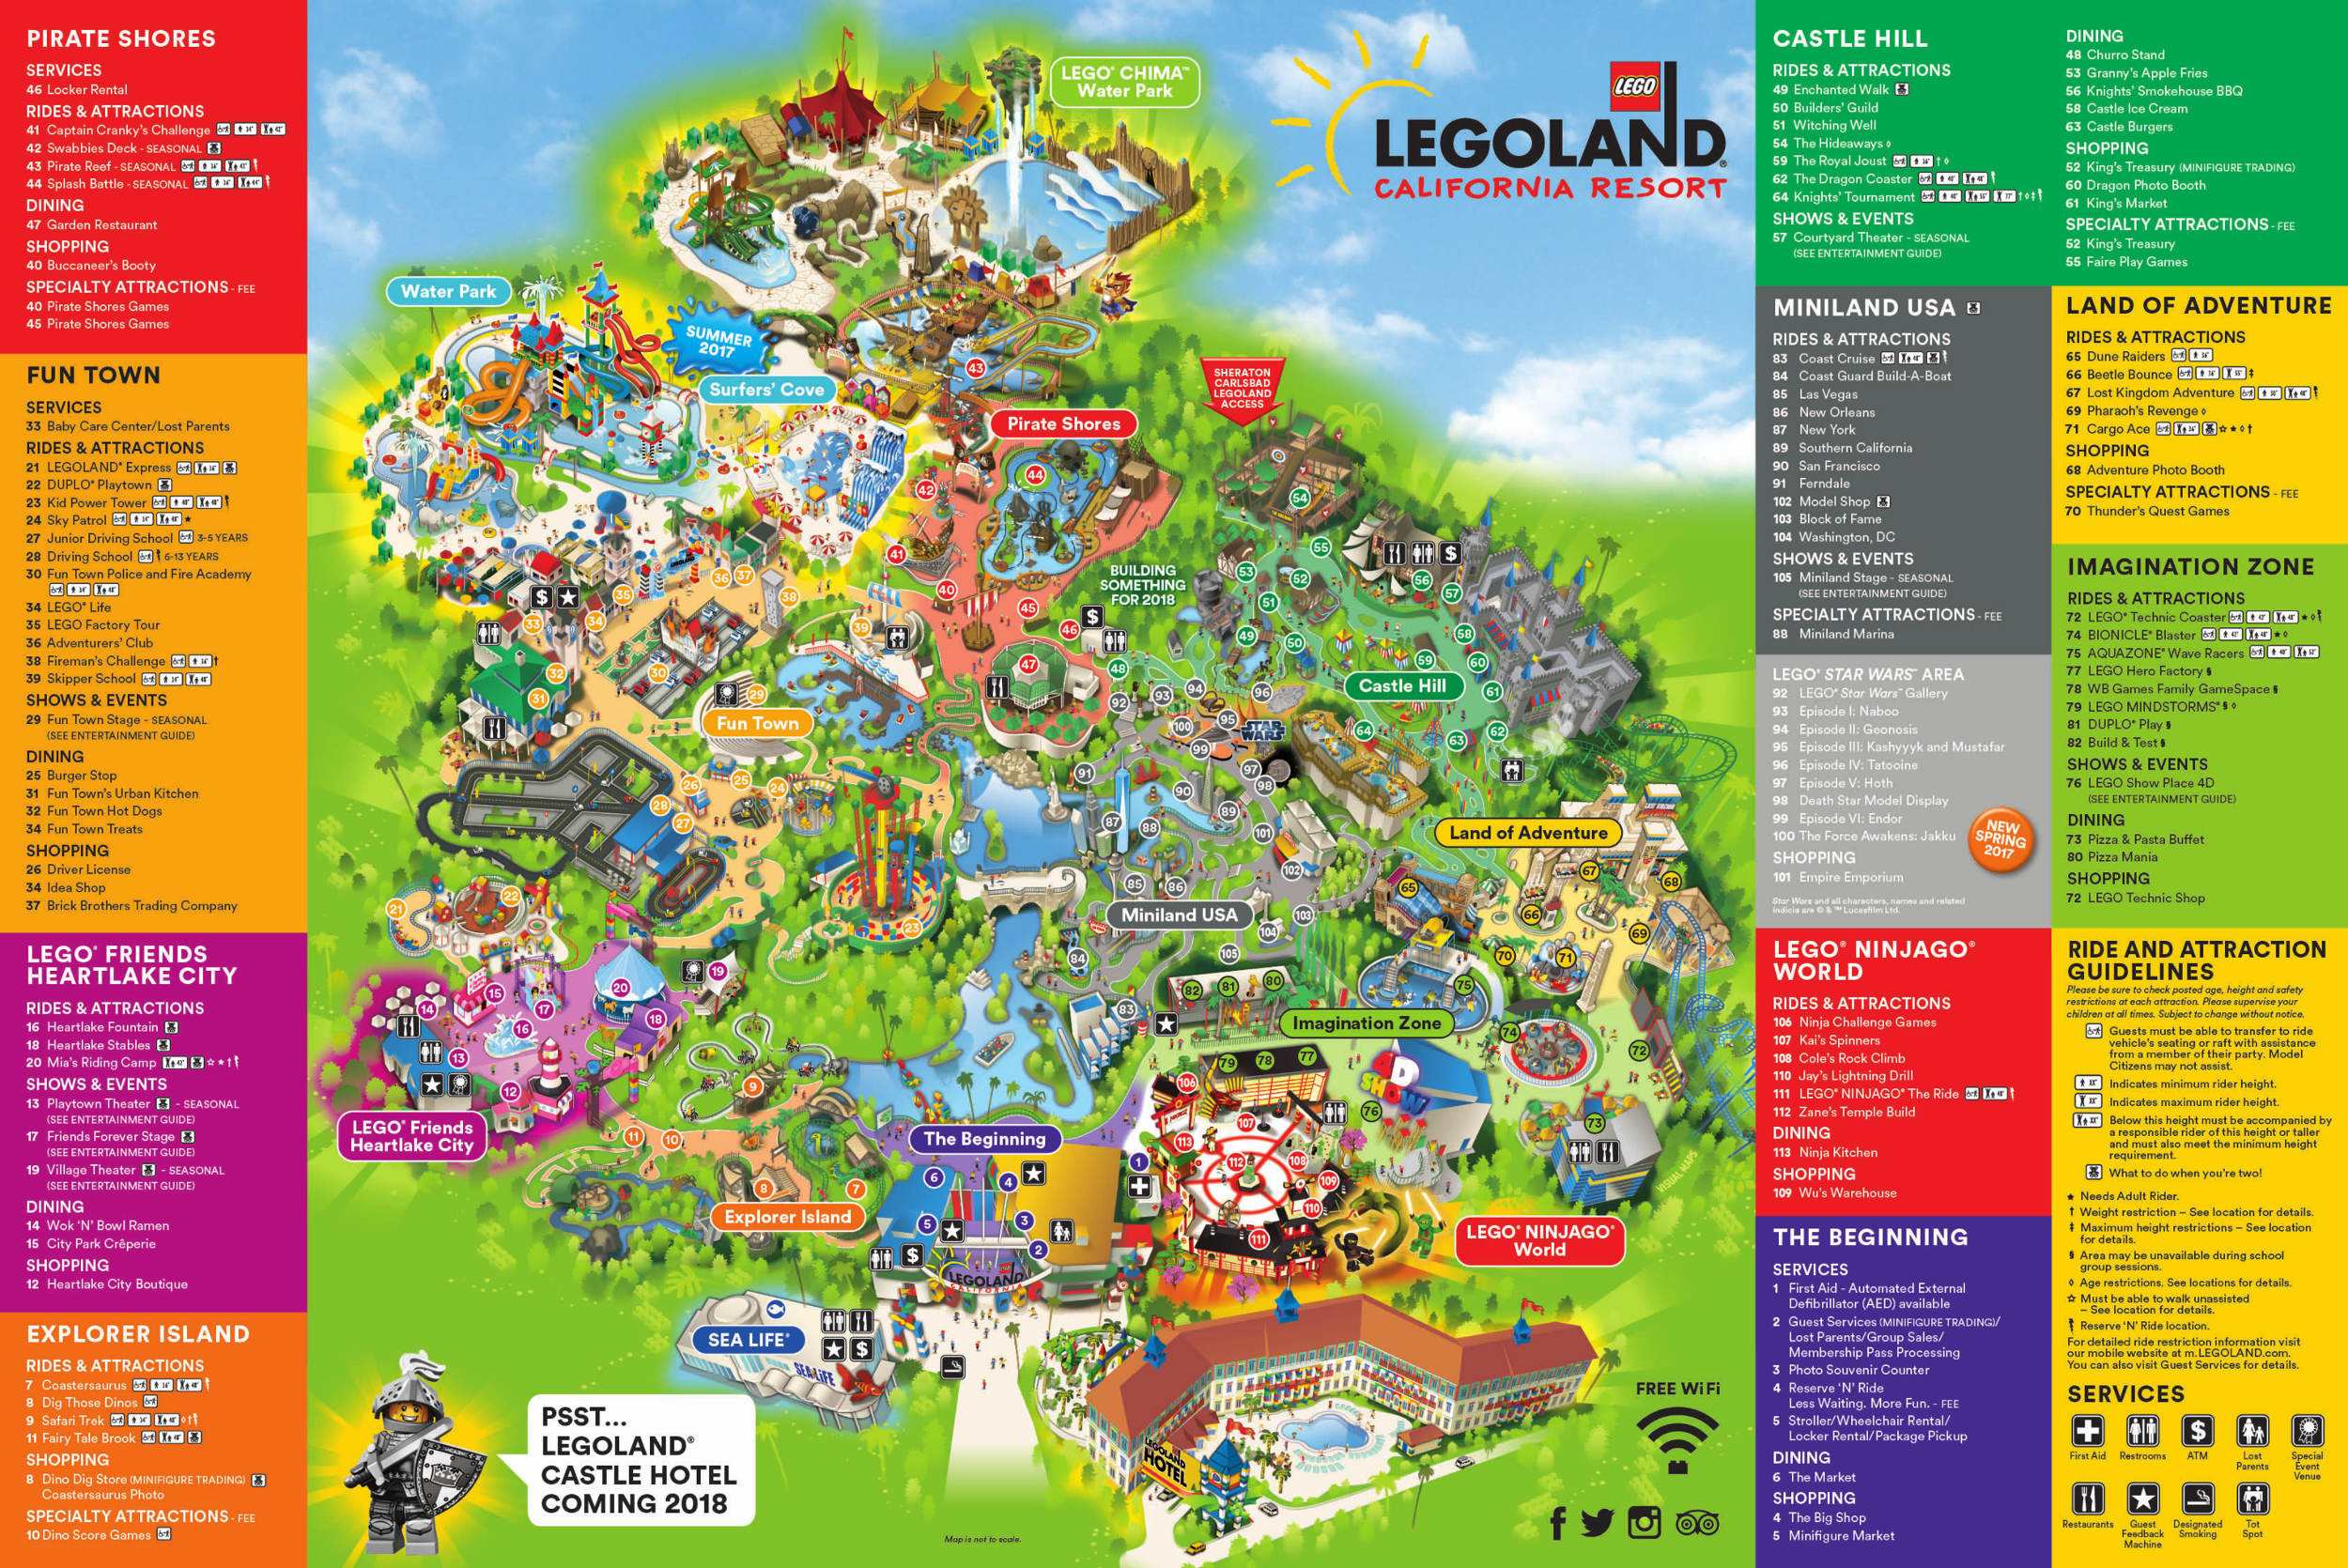 Legoland California Resort Theme Park Map Google Maps California Map - Amusement Parks California Map